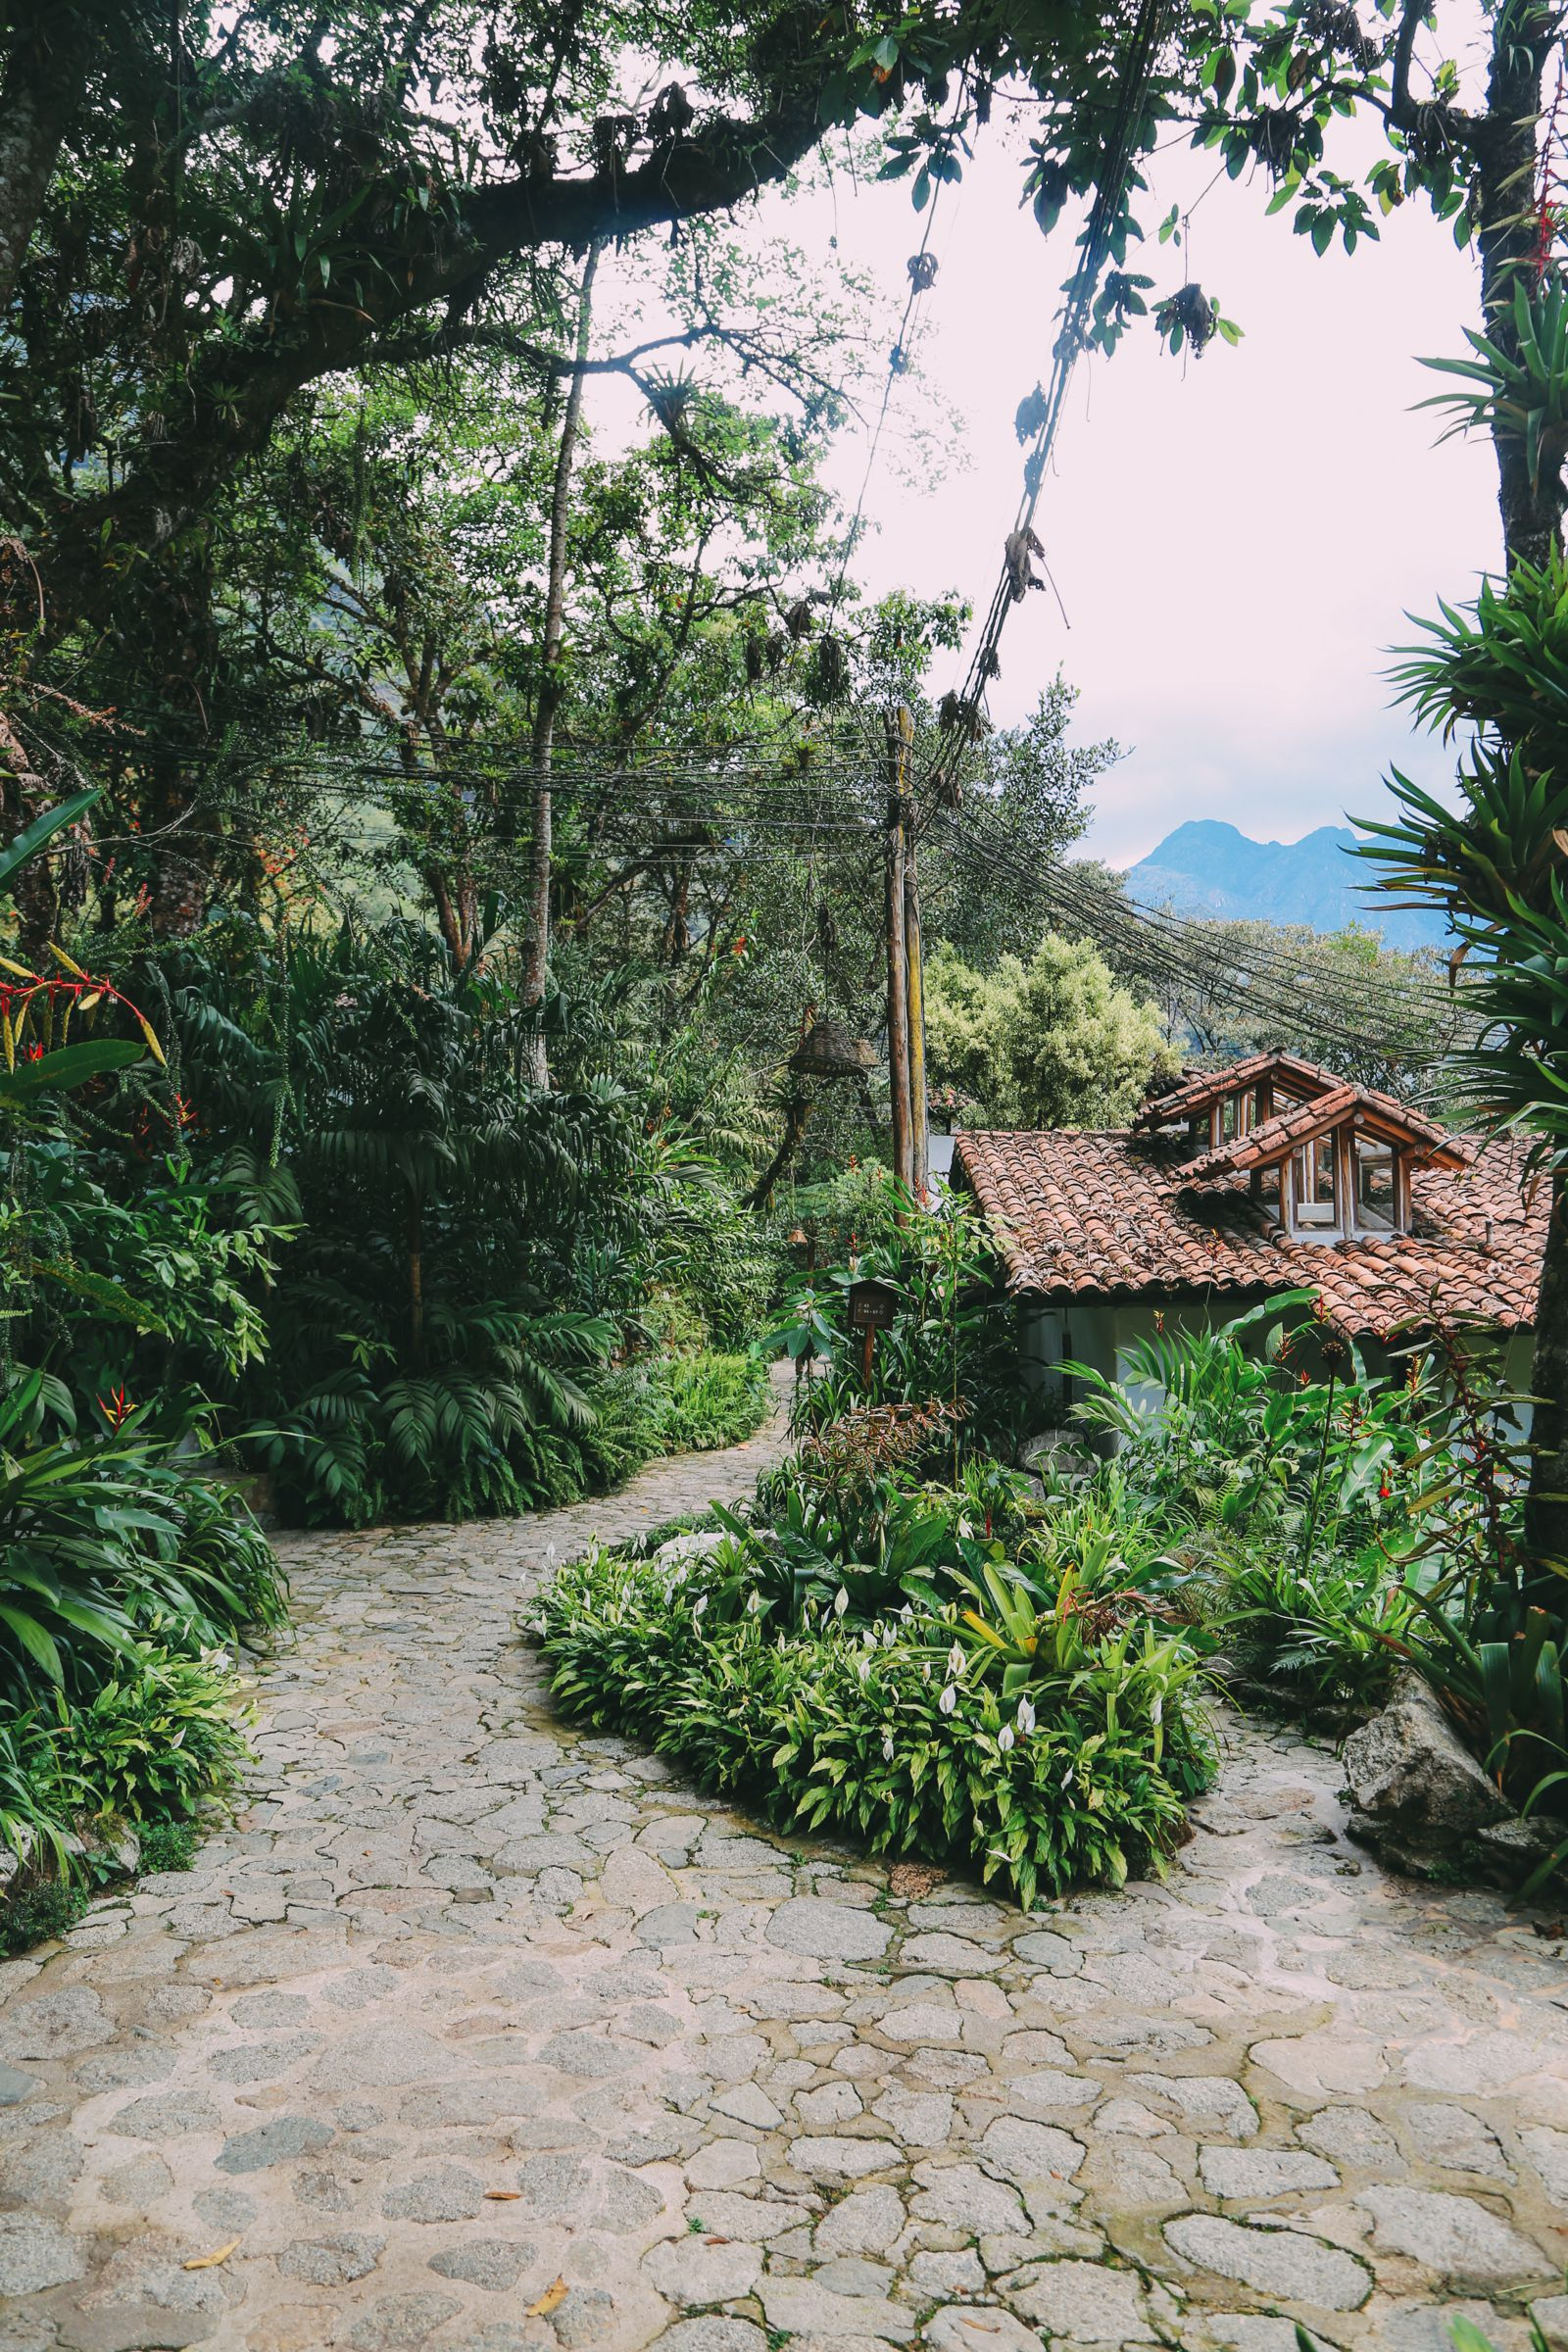 Where To Stay (And What To Do) In Aguas Caliente - The Entry Point To Machu Picchu, Peru (7)